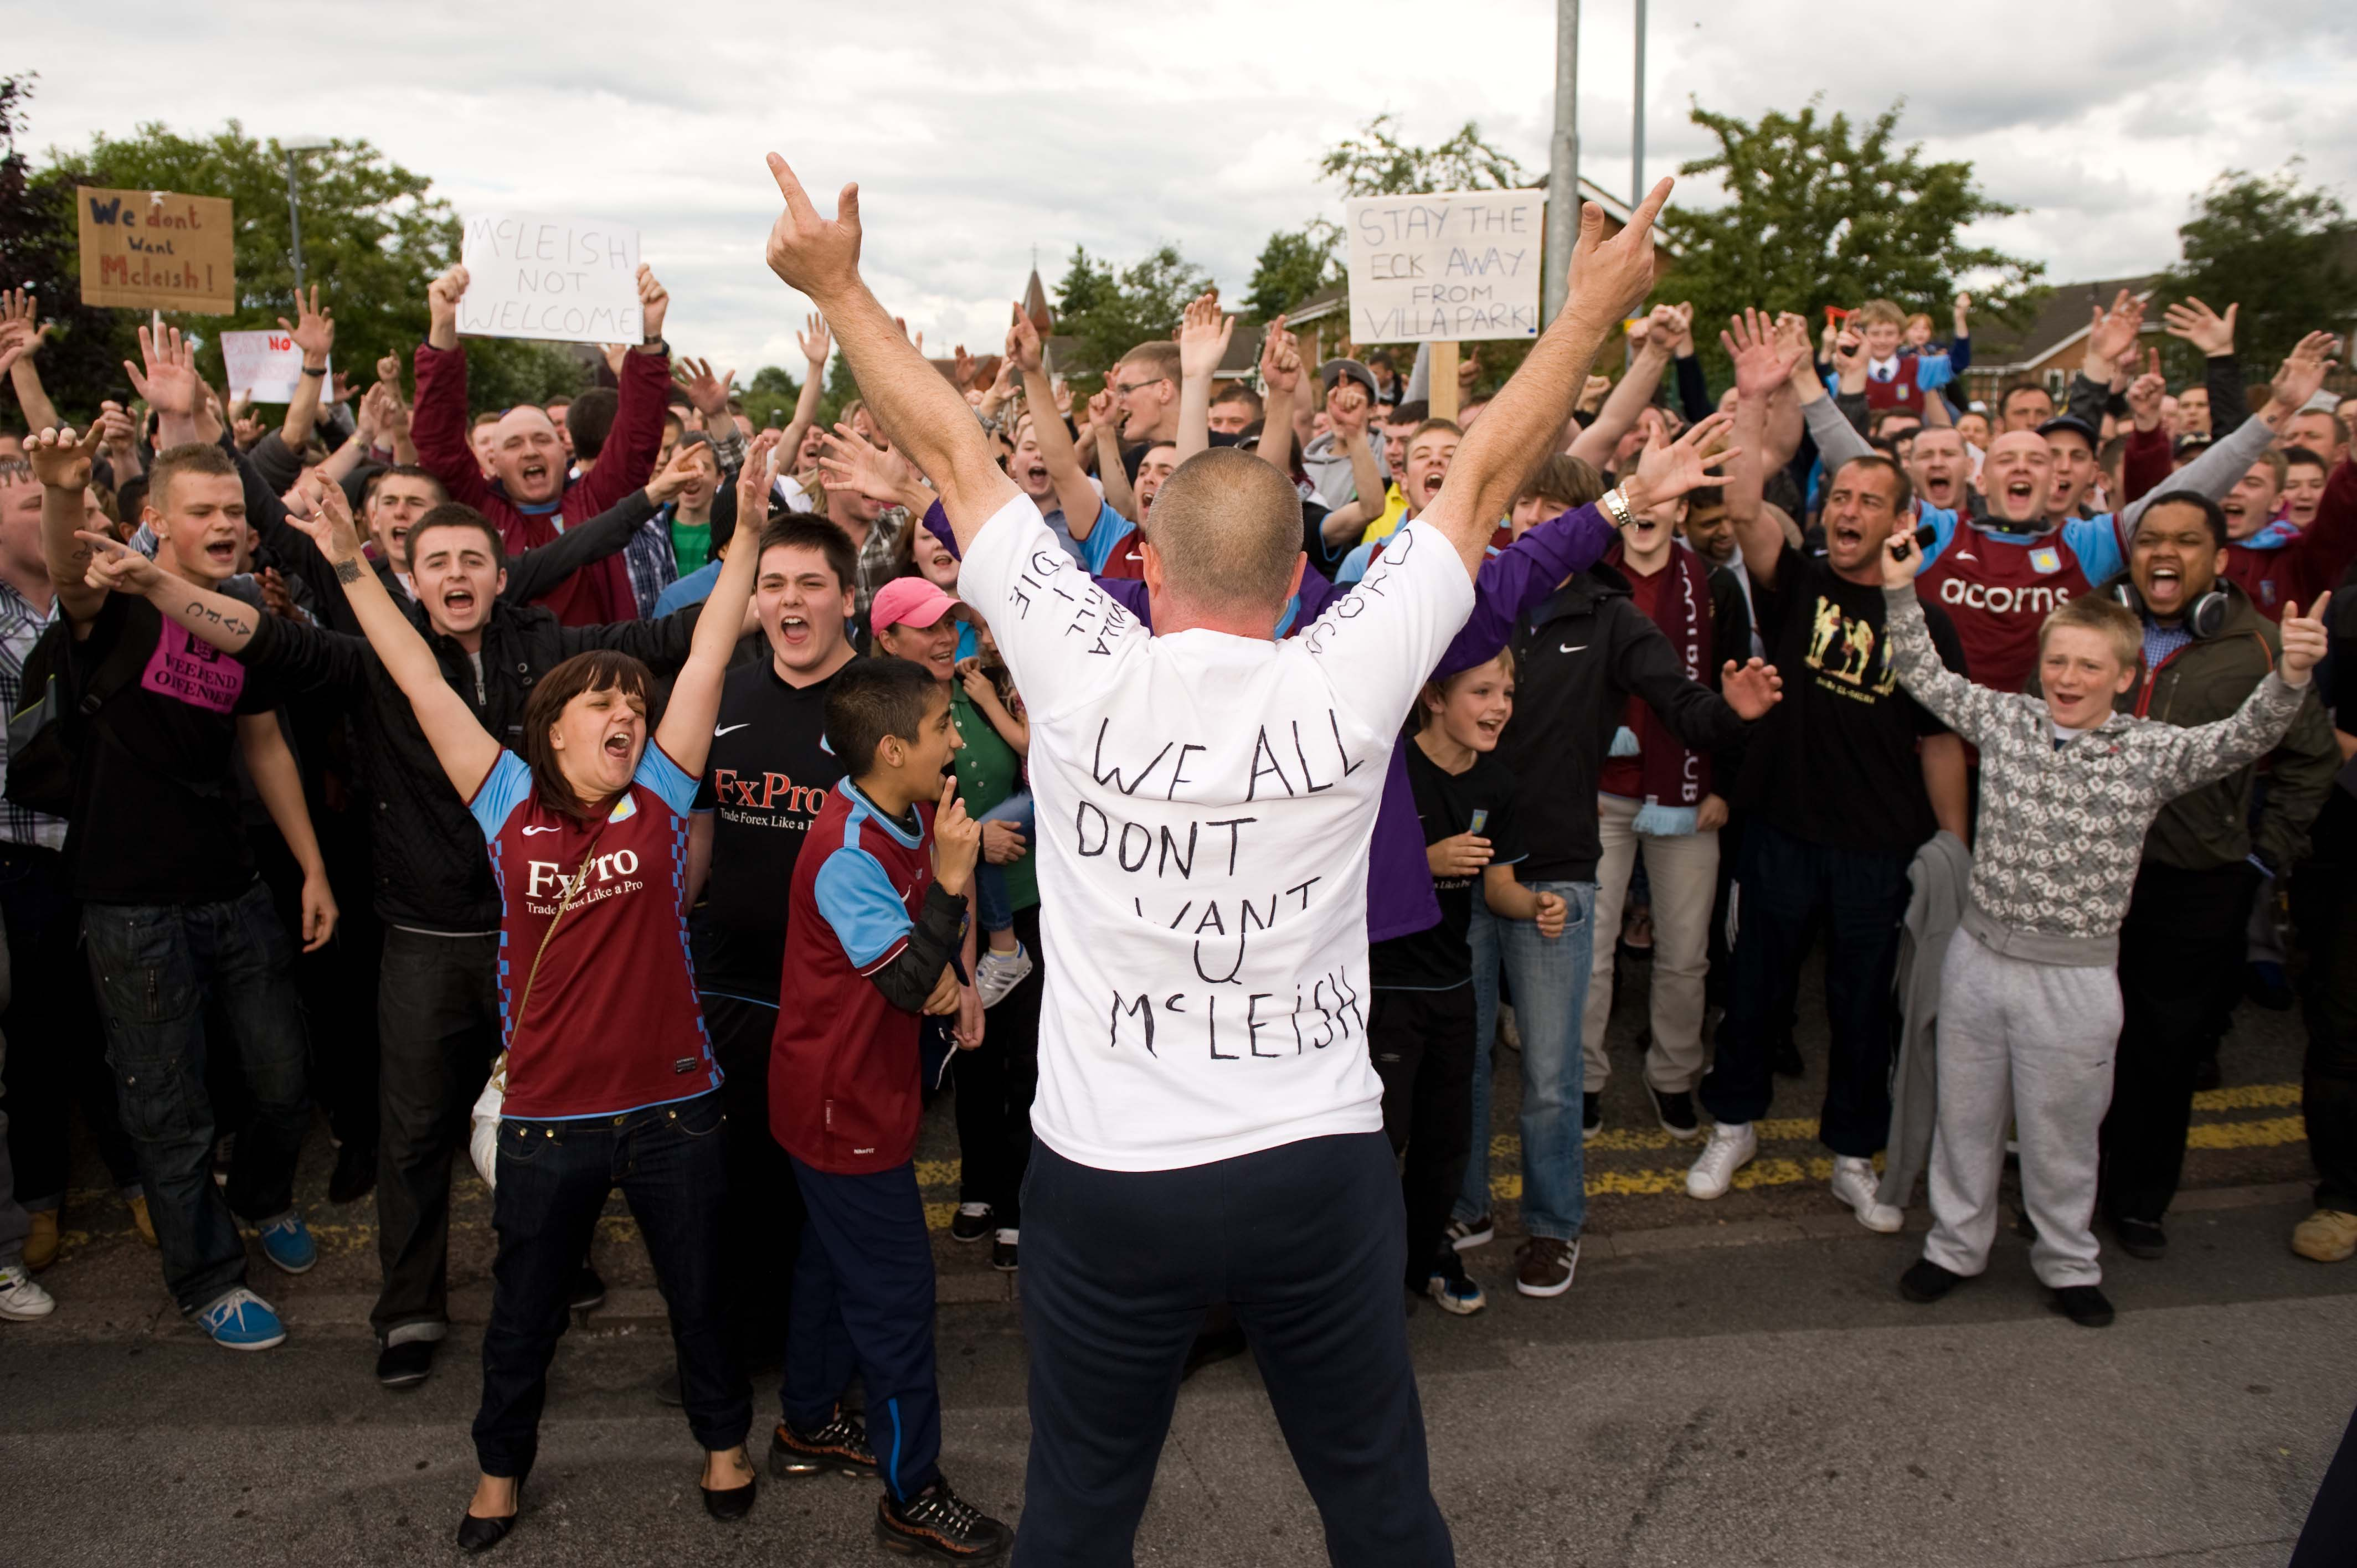 Villa fans protest over McLeish